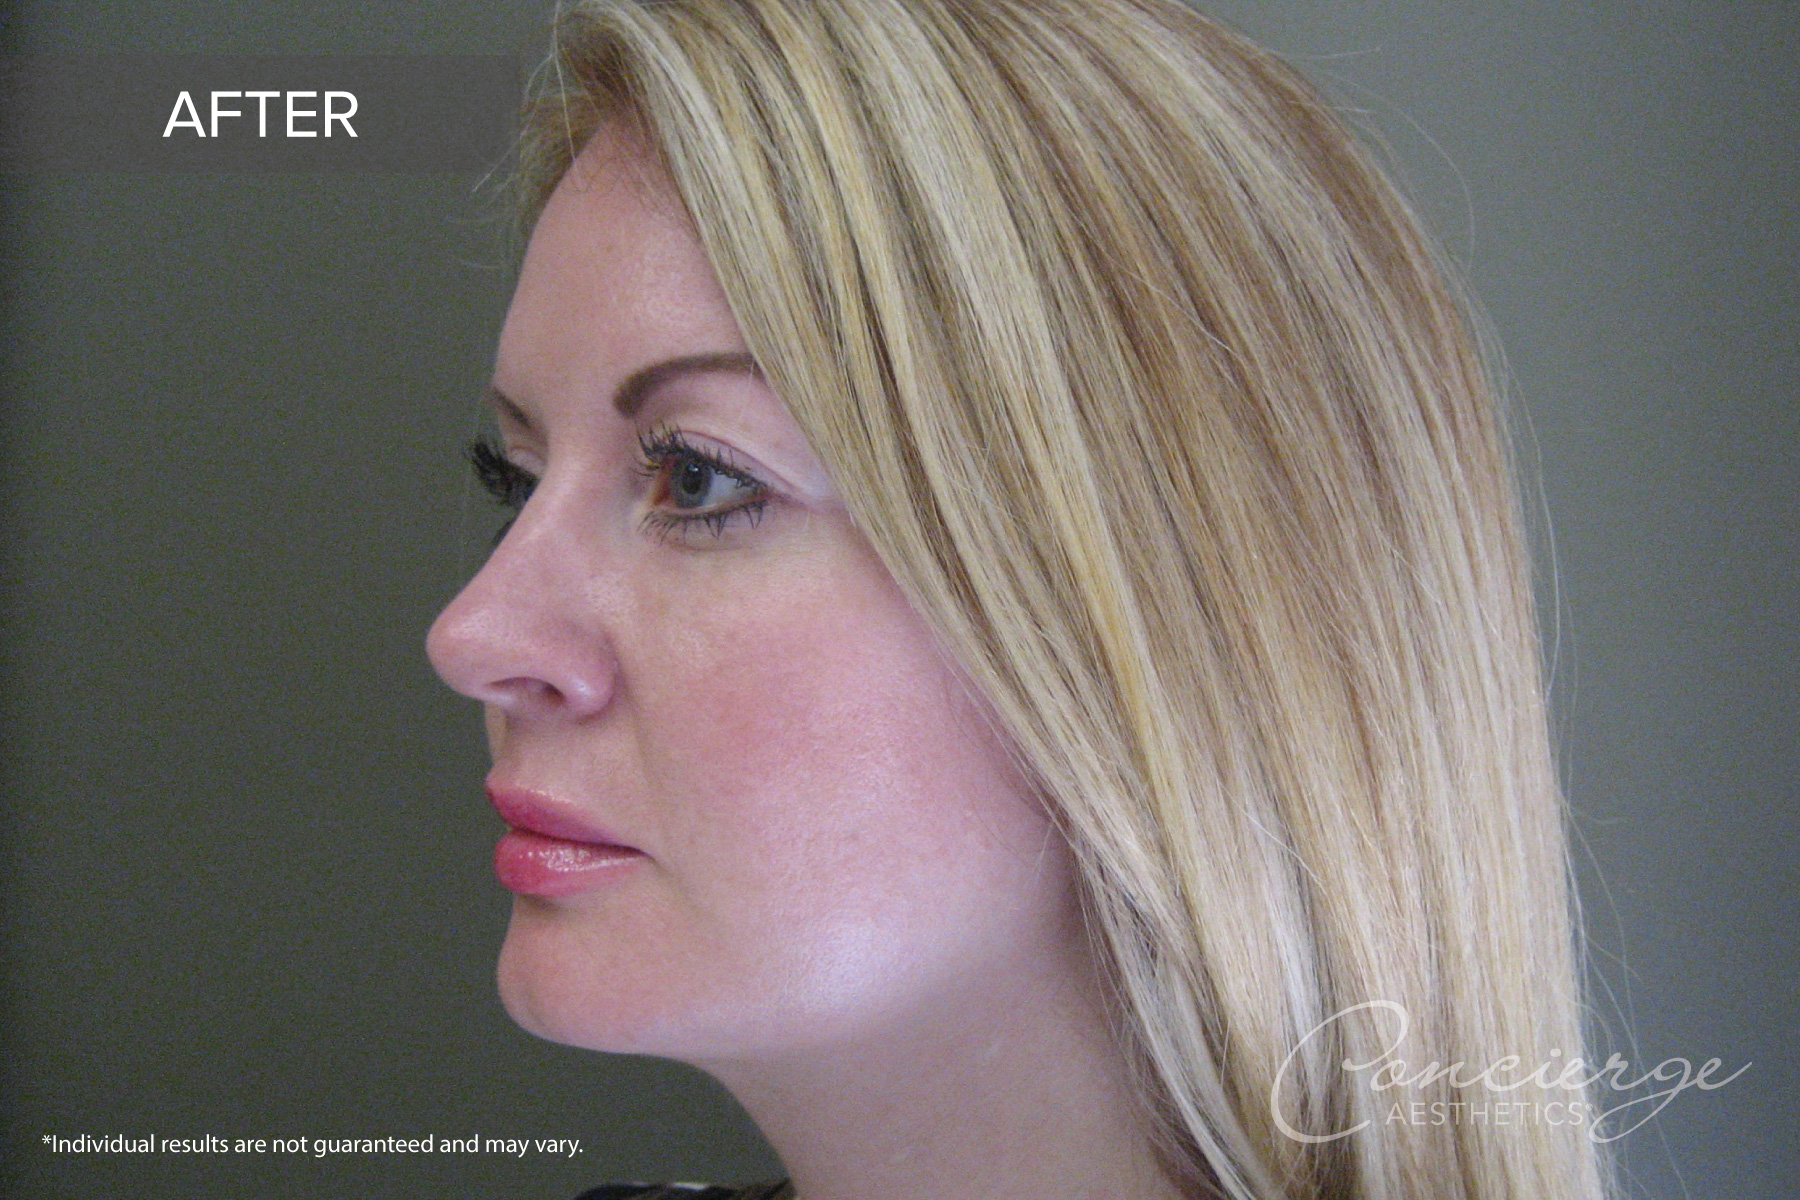 Kybella - Before and After Photos